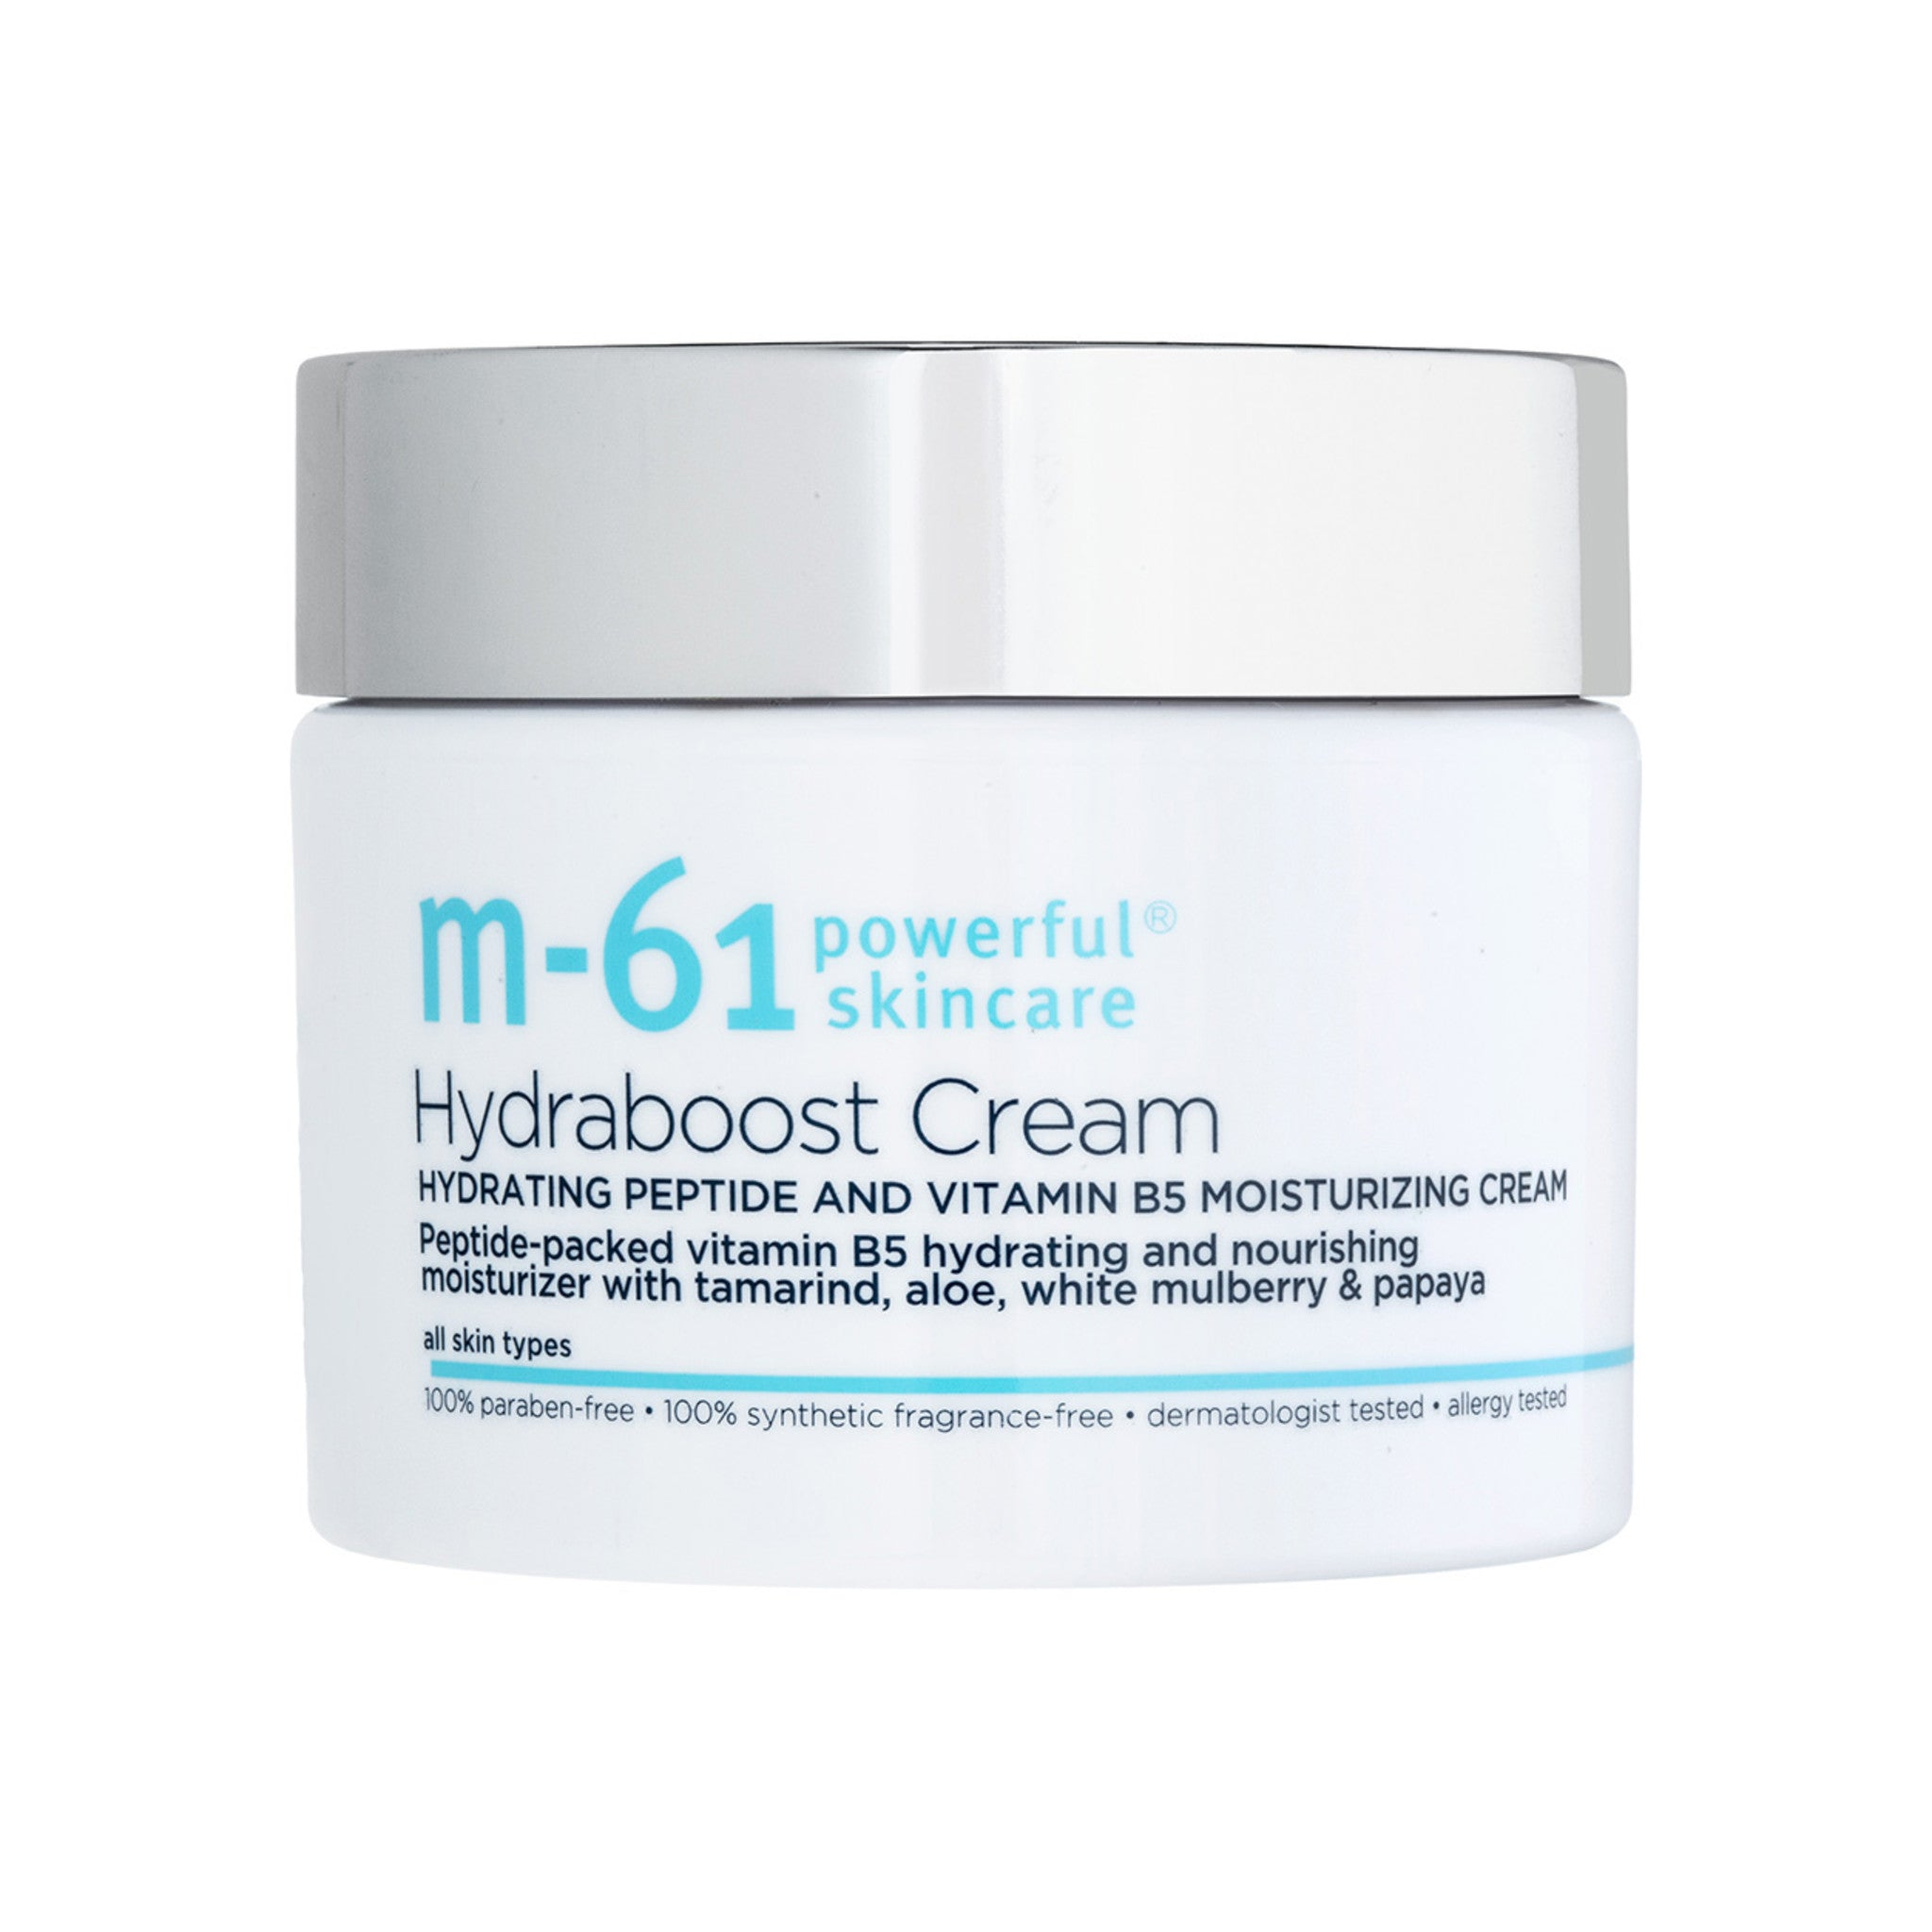 Hydraboost Cream